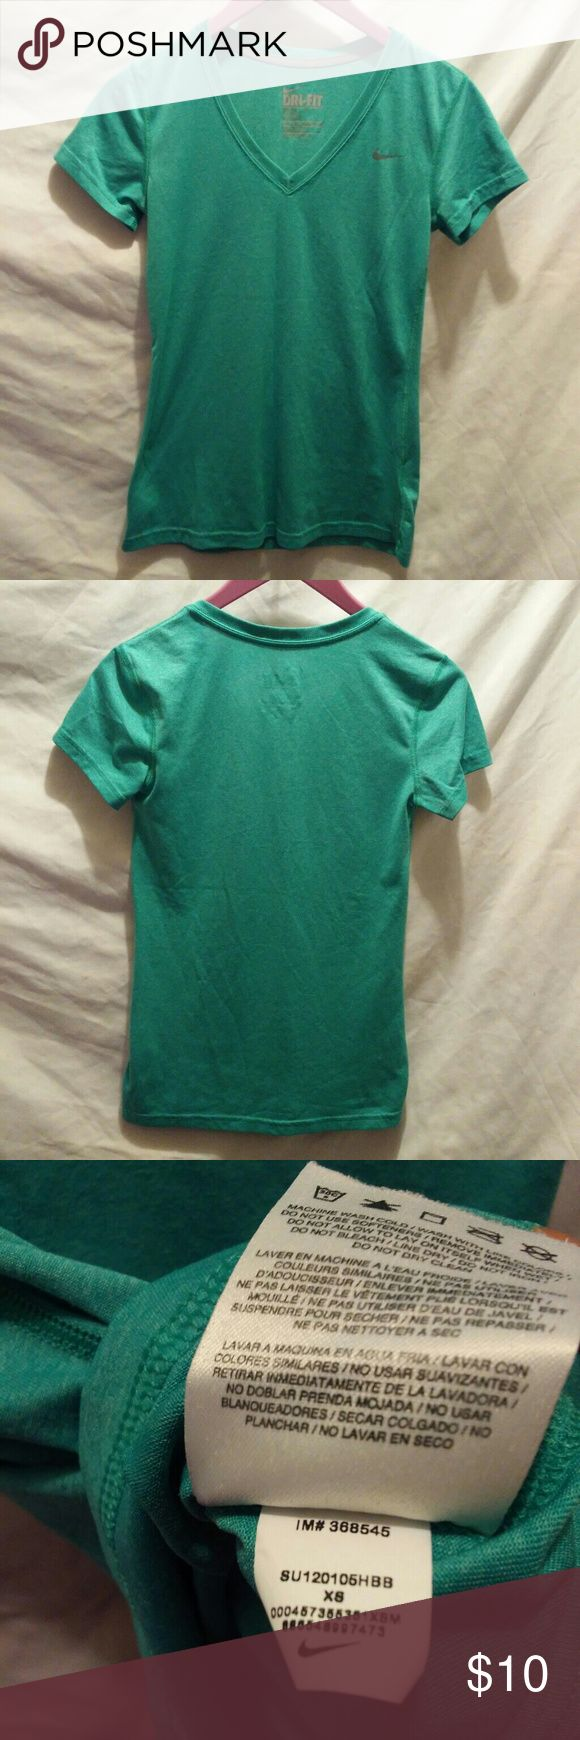 """Nike dri fit v neck t shirt in green Green pastel colors V neck Armpit to pit laying flat 15.5"""" Length from top shoulder to hem 24.5"""" Great condition Nike Tops"""